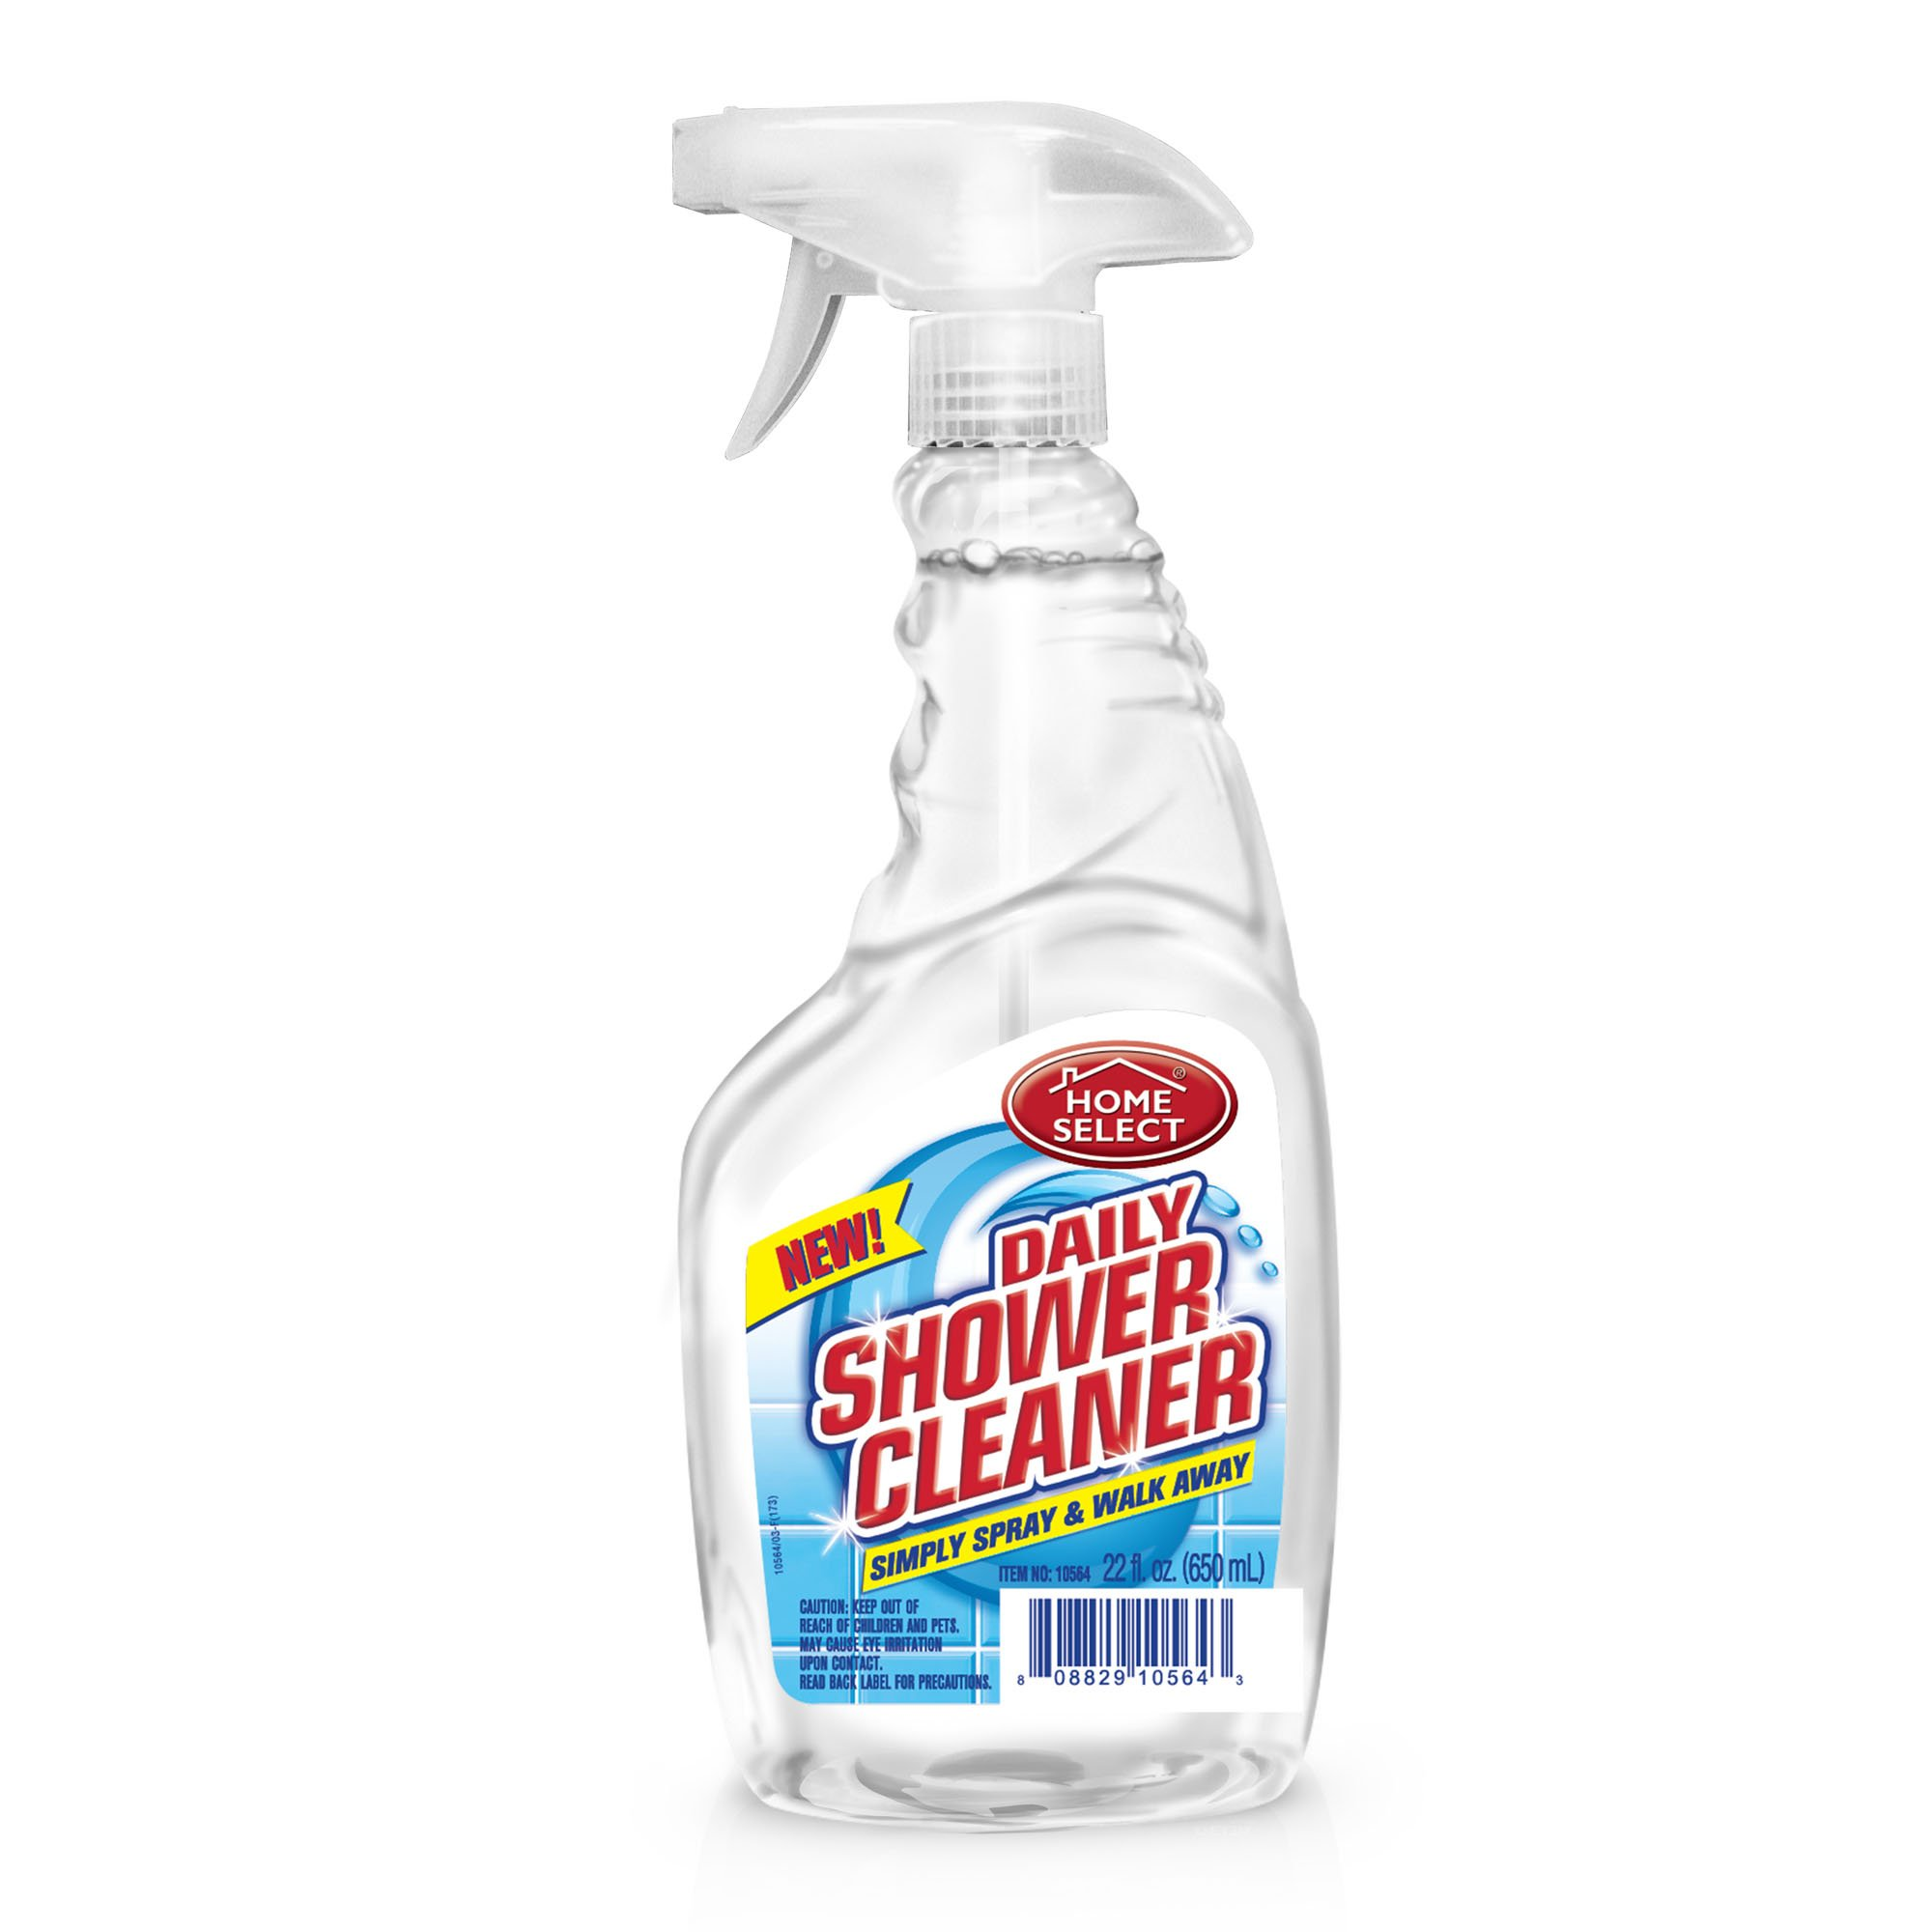 Home Select Daily Shower Cleaner